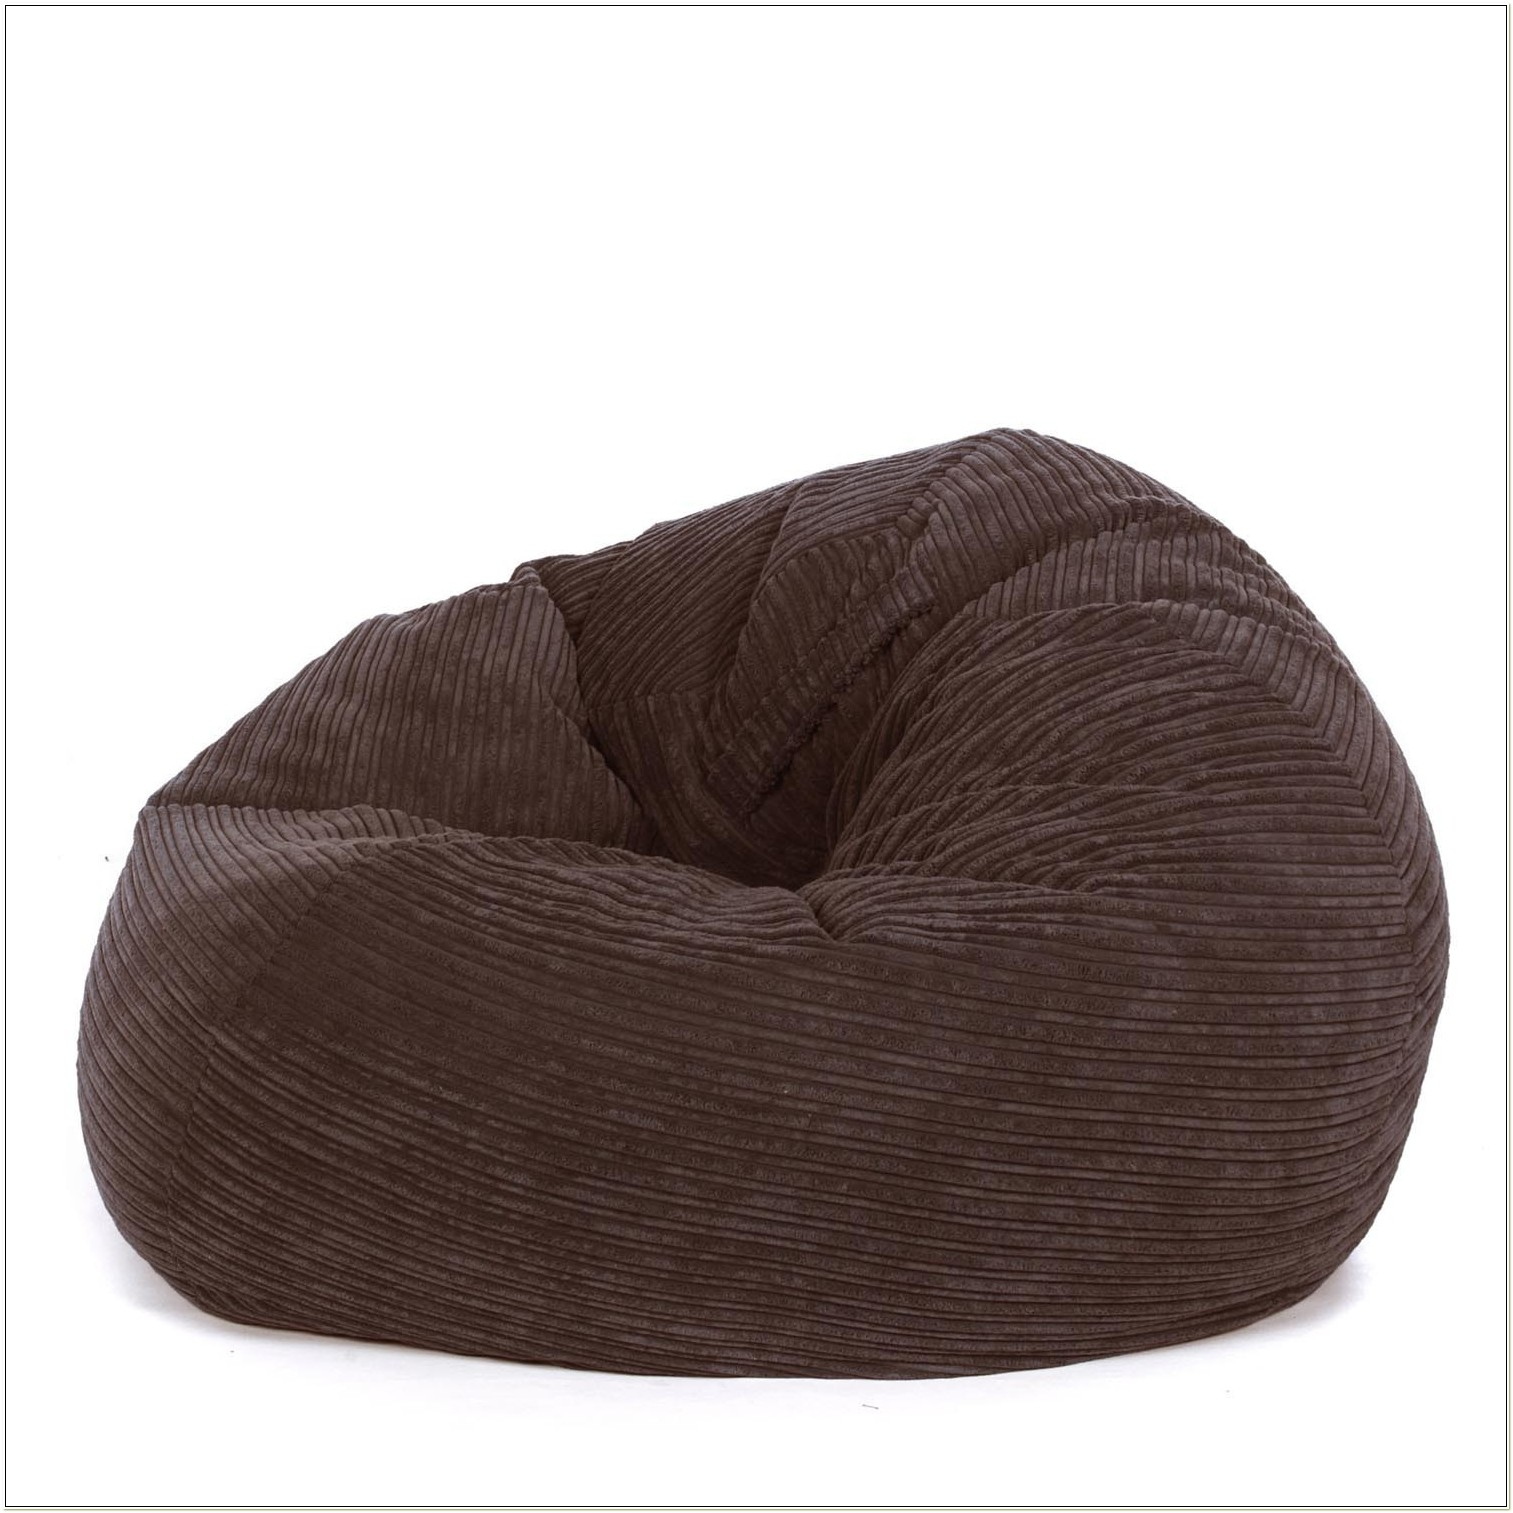 Brown Corduroy Bean Bag Chair